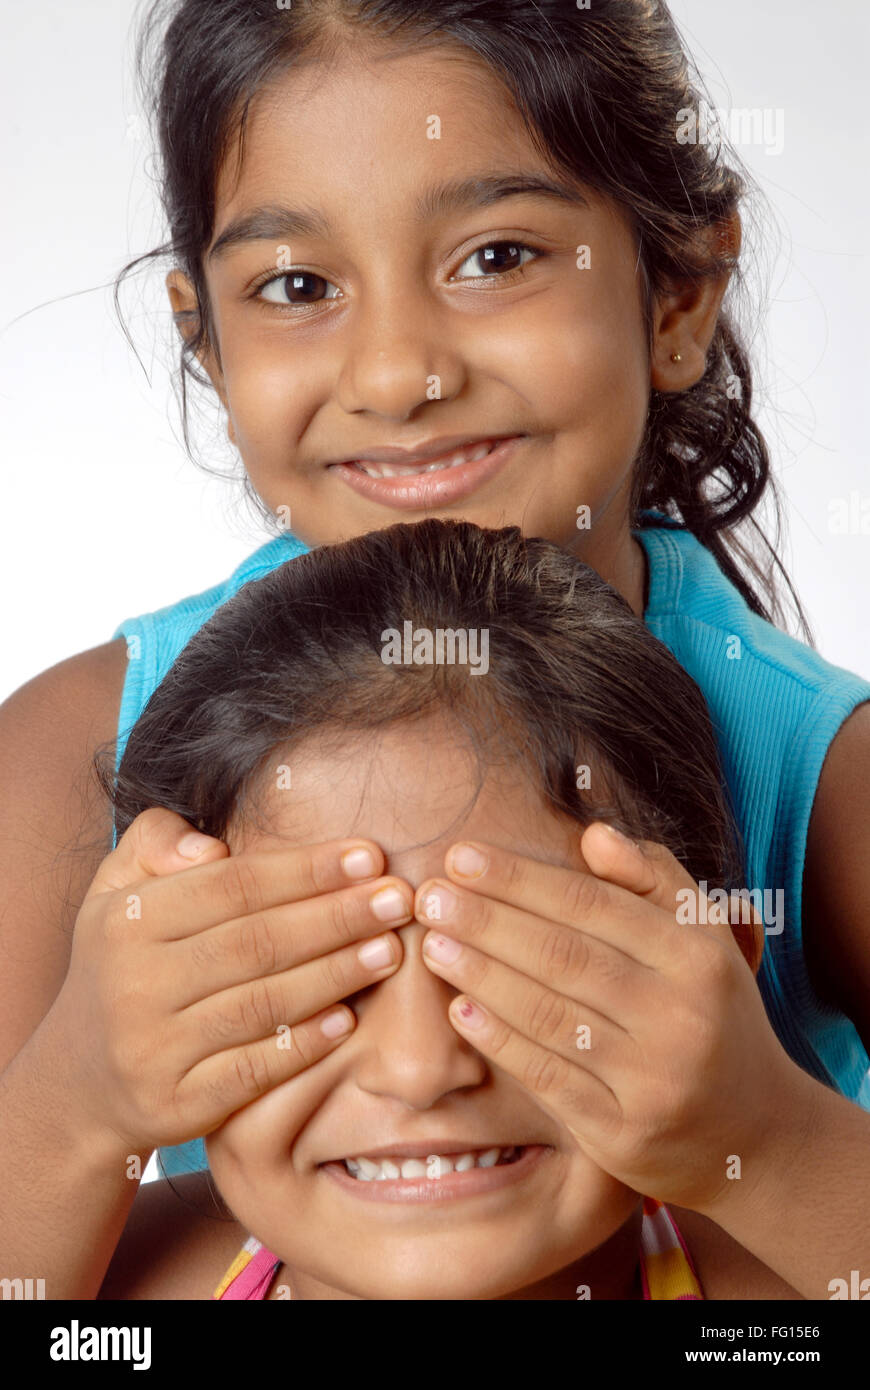 South Asian Indian two girls playing hide and seek game MR#364 - Stock Image